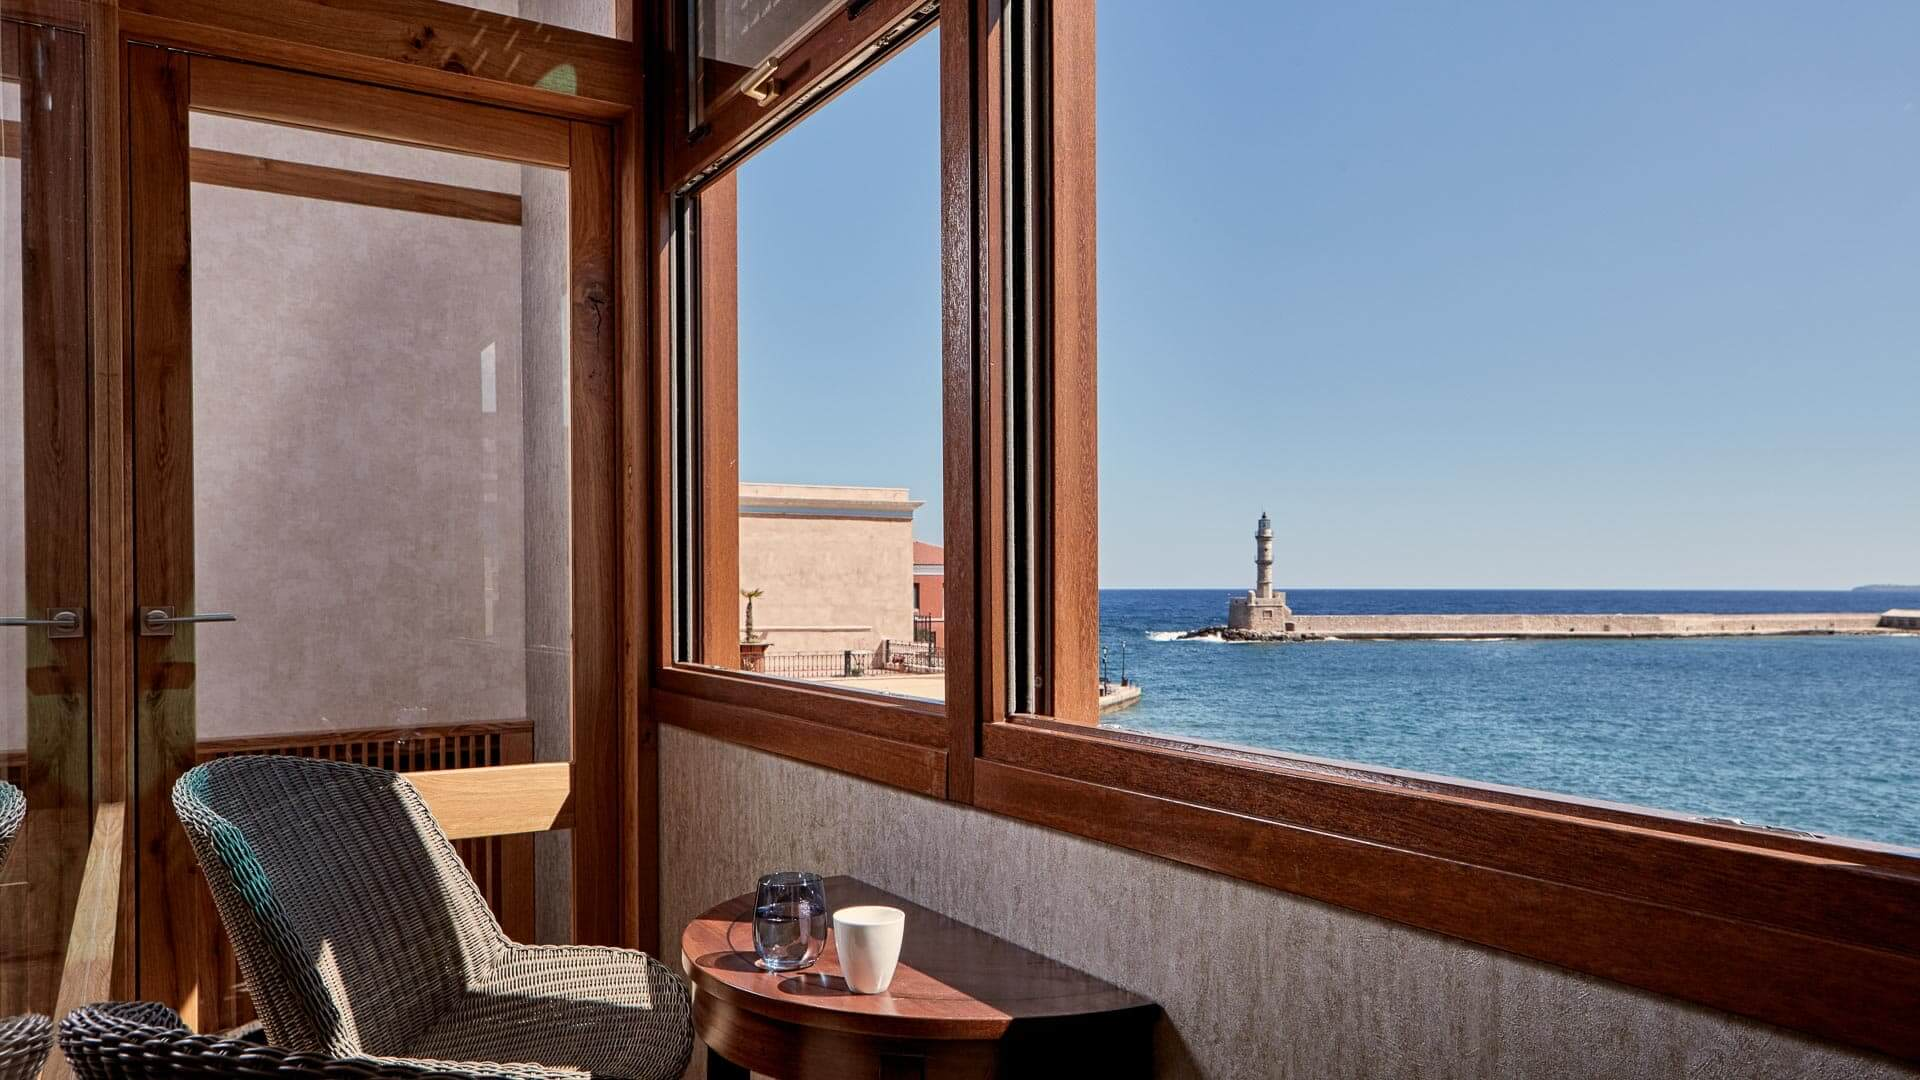 Chania harbour sea view from the oriel balcony of a luxury suite at Domus Renier Boutique Hotel